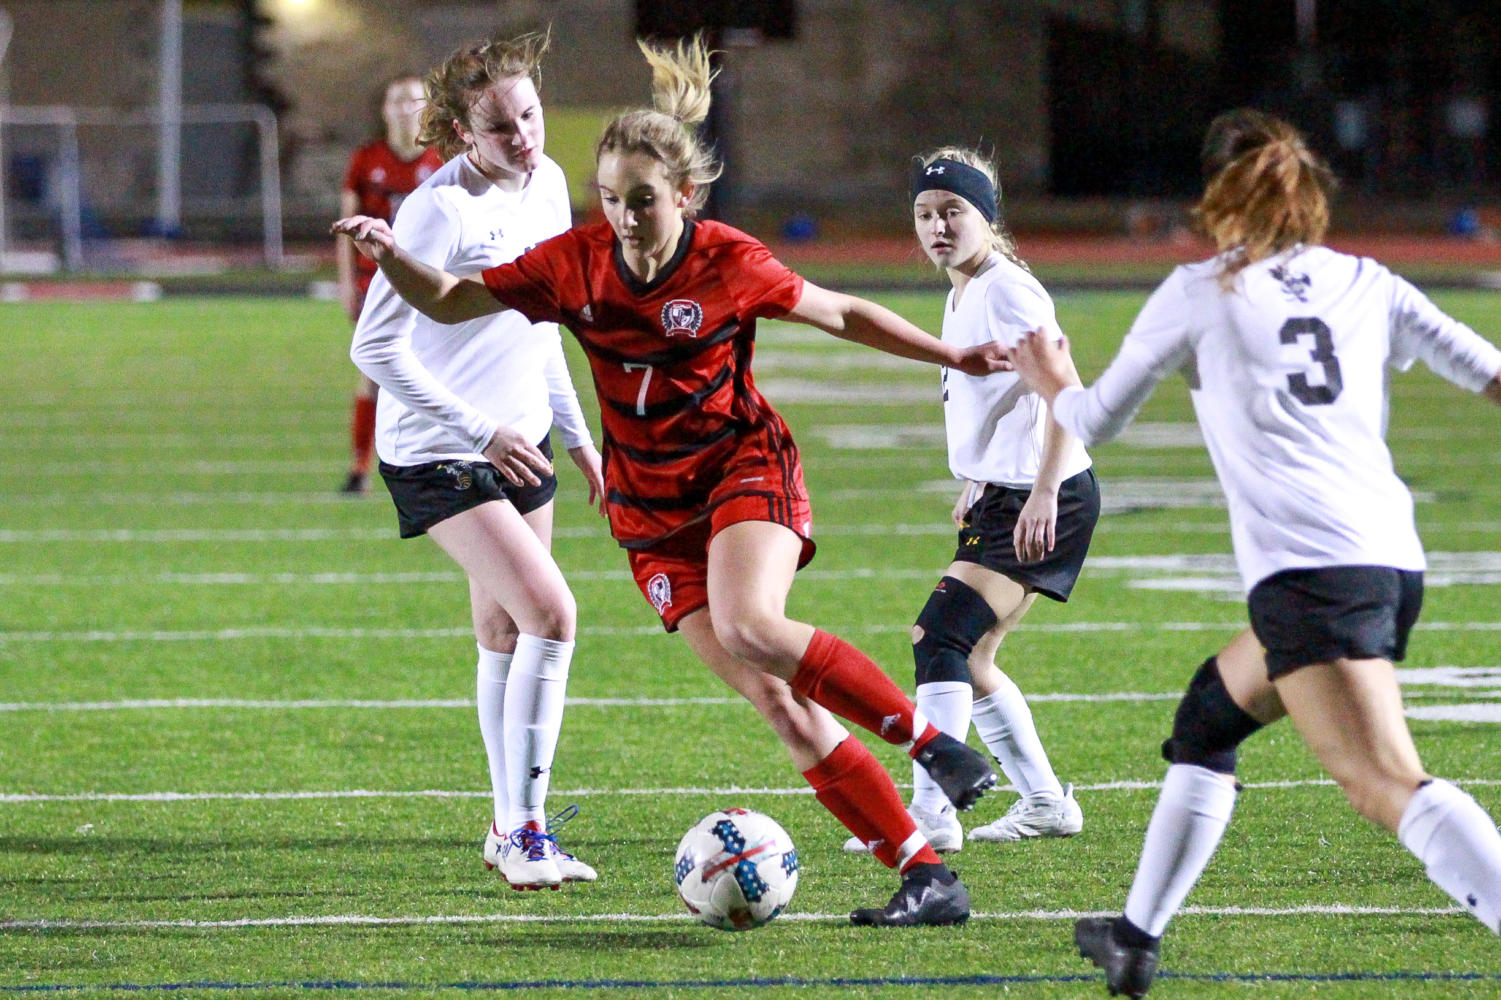 Freshman Tatum Chester picks the ball and looks towards the goal.